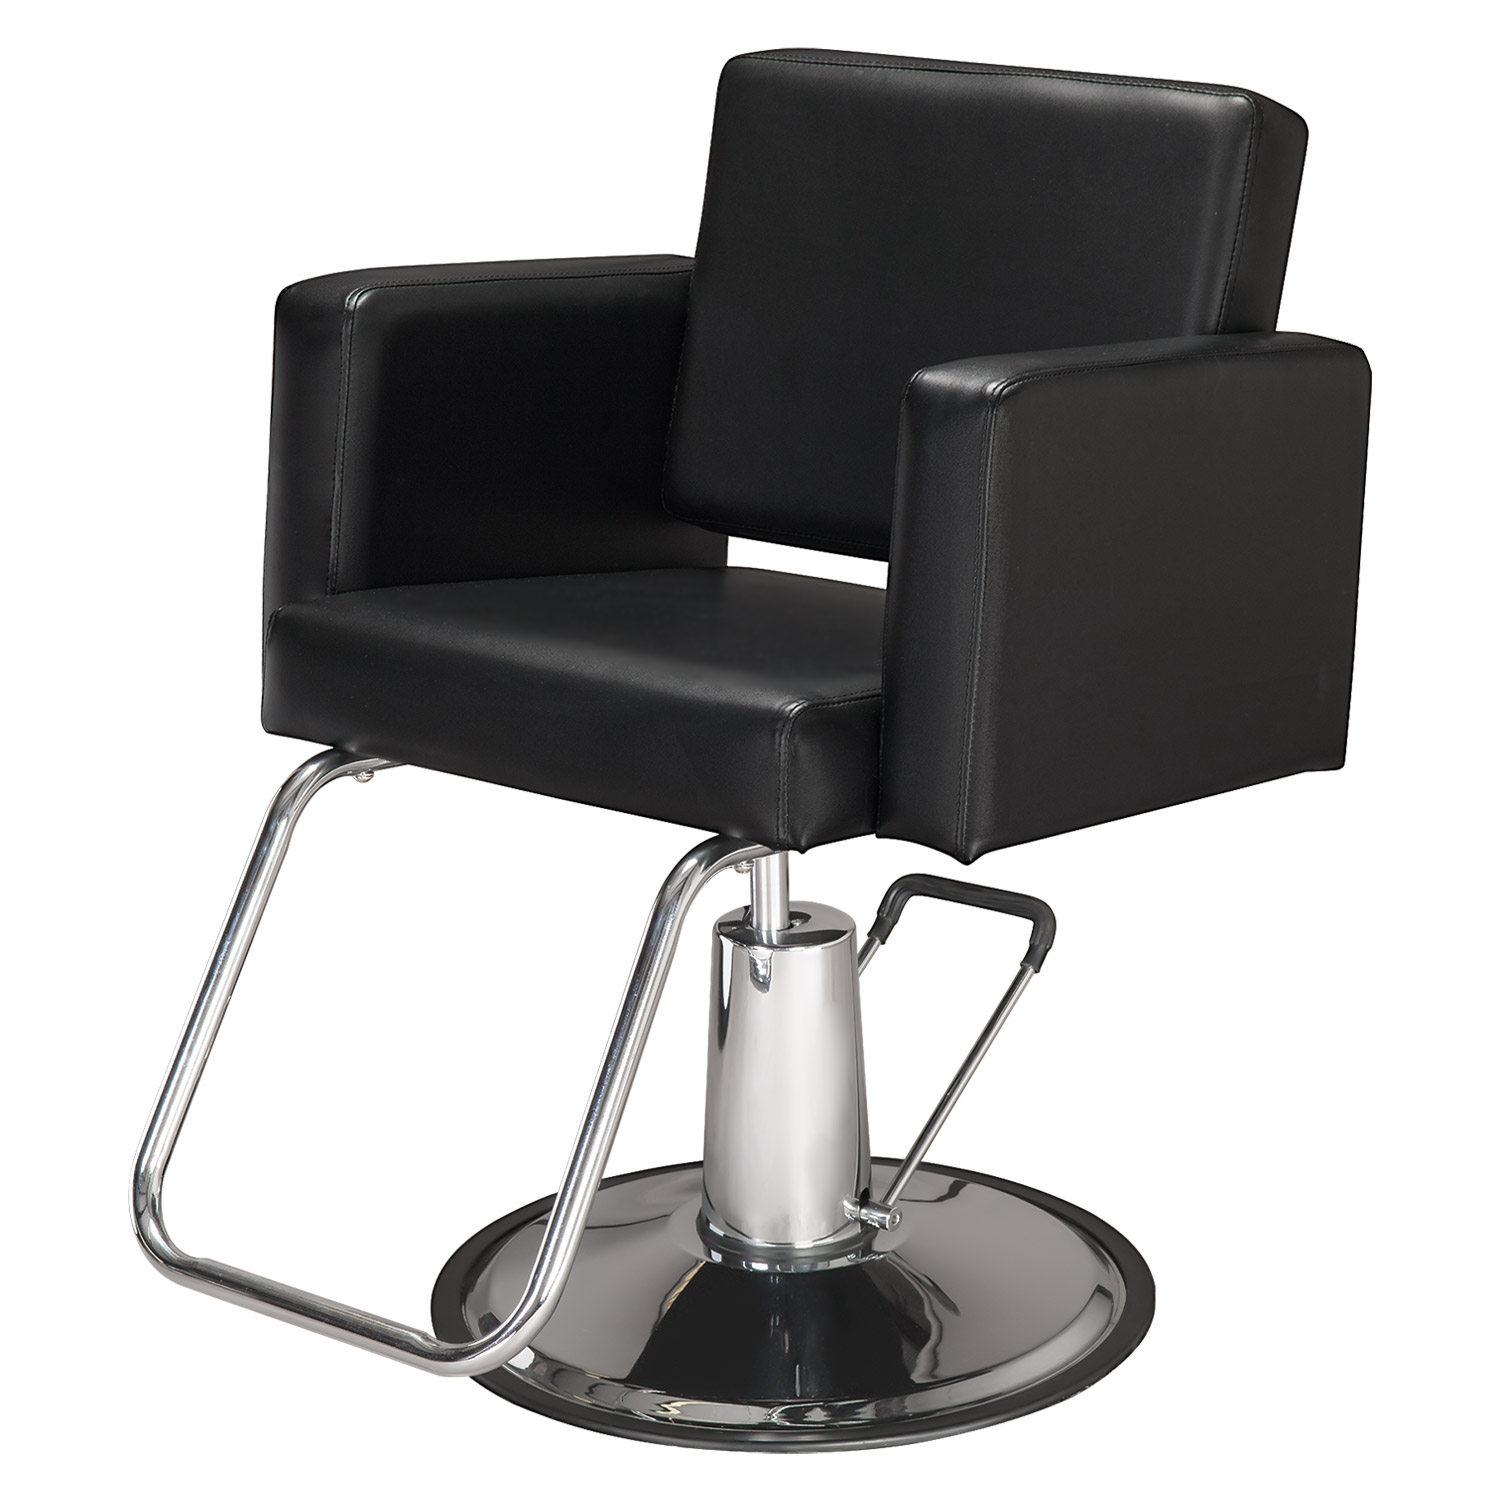 Pibbs 3406 Cosmo Hair Stylist Chair alternative product image 7